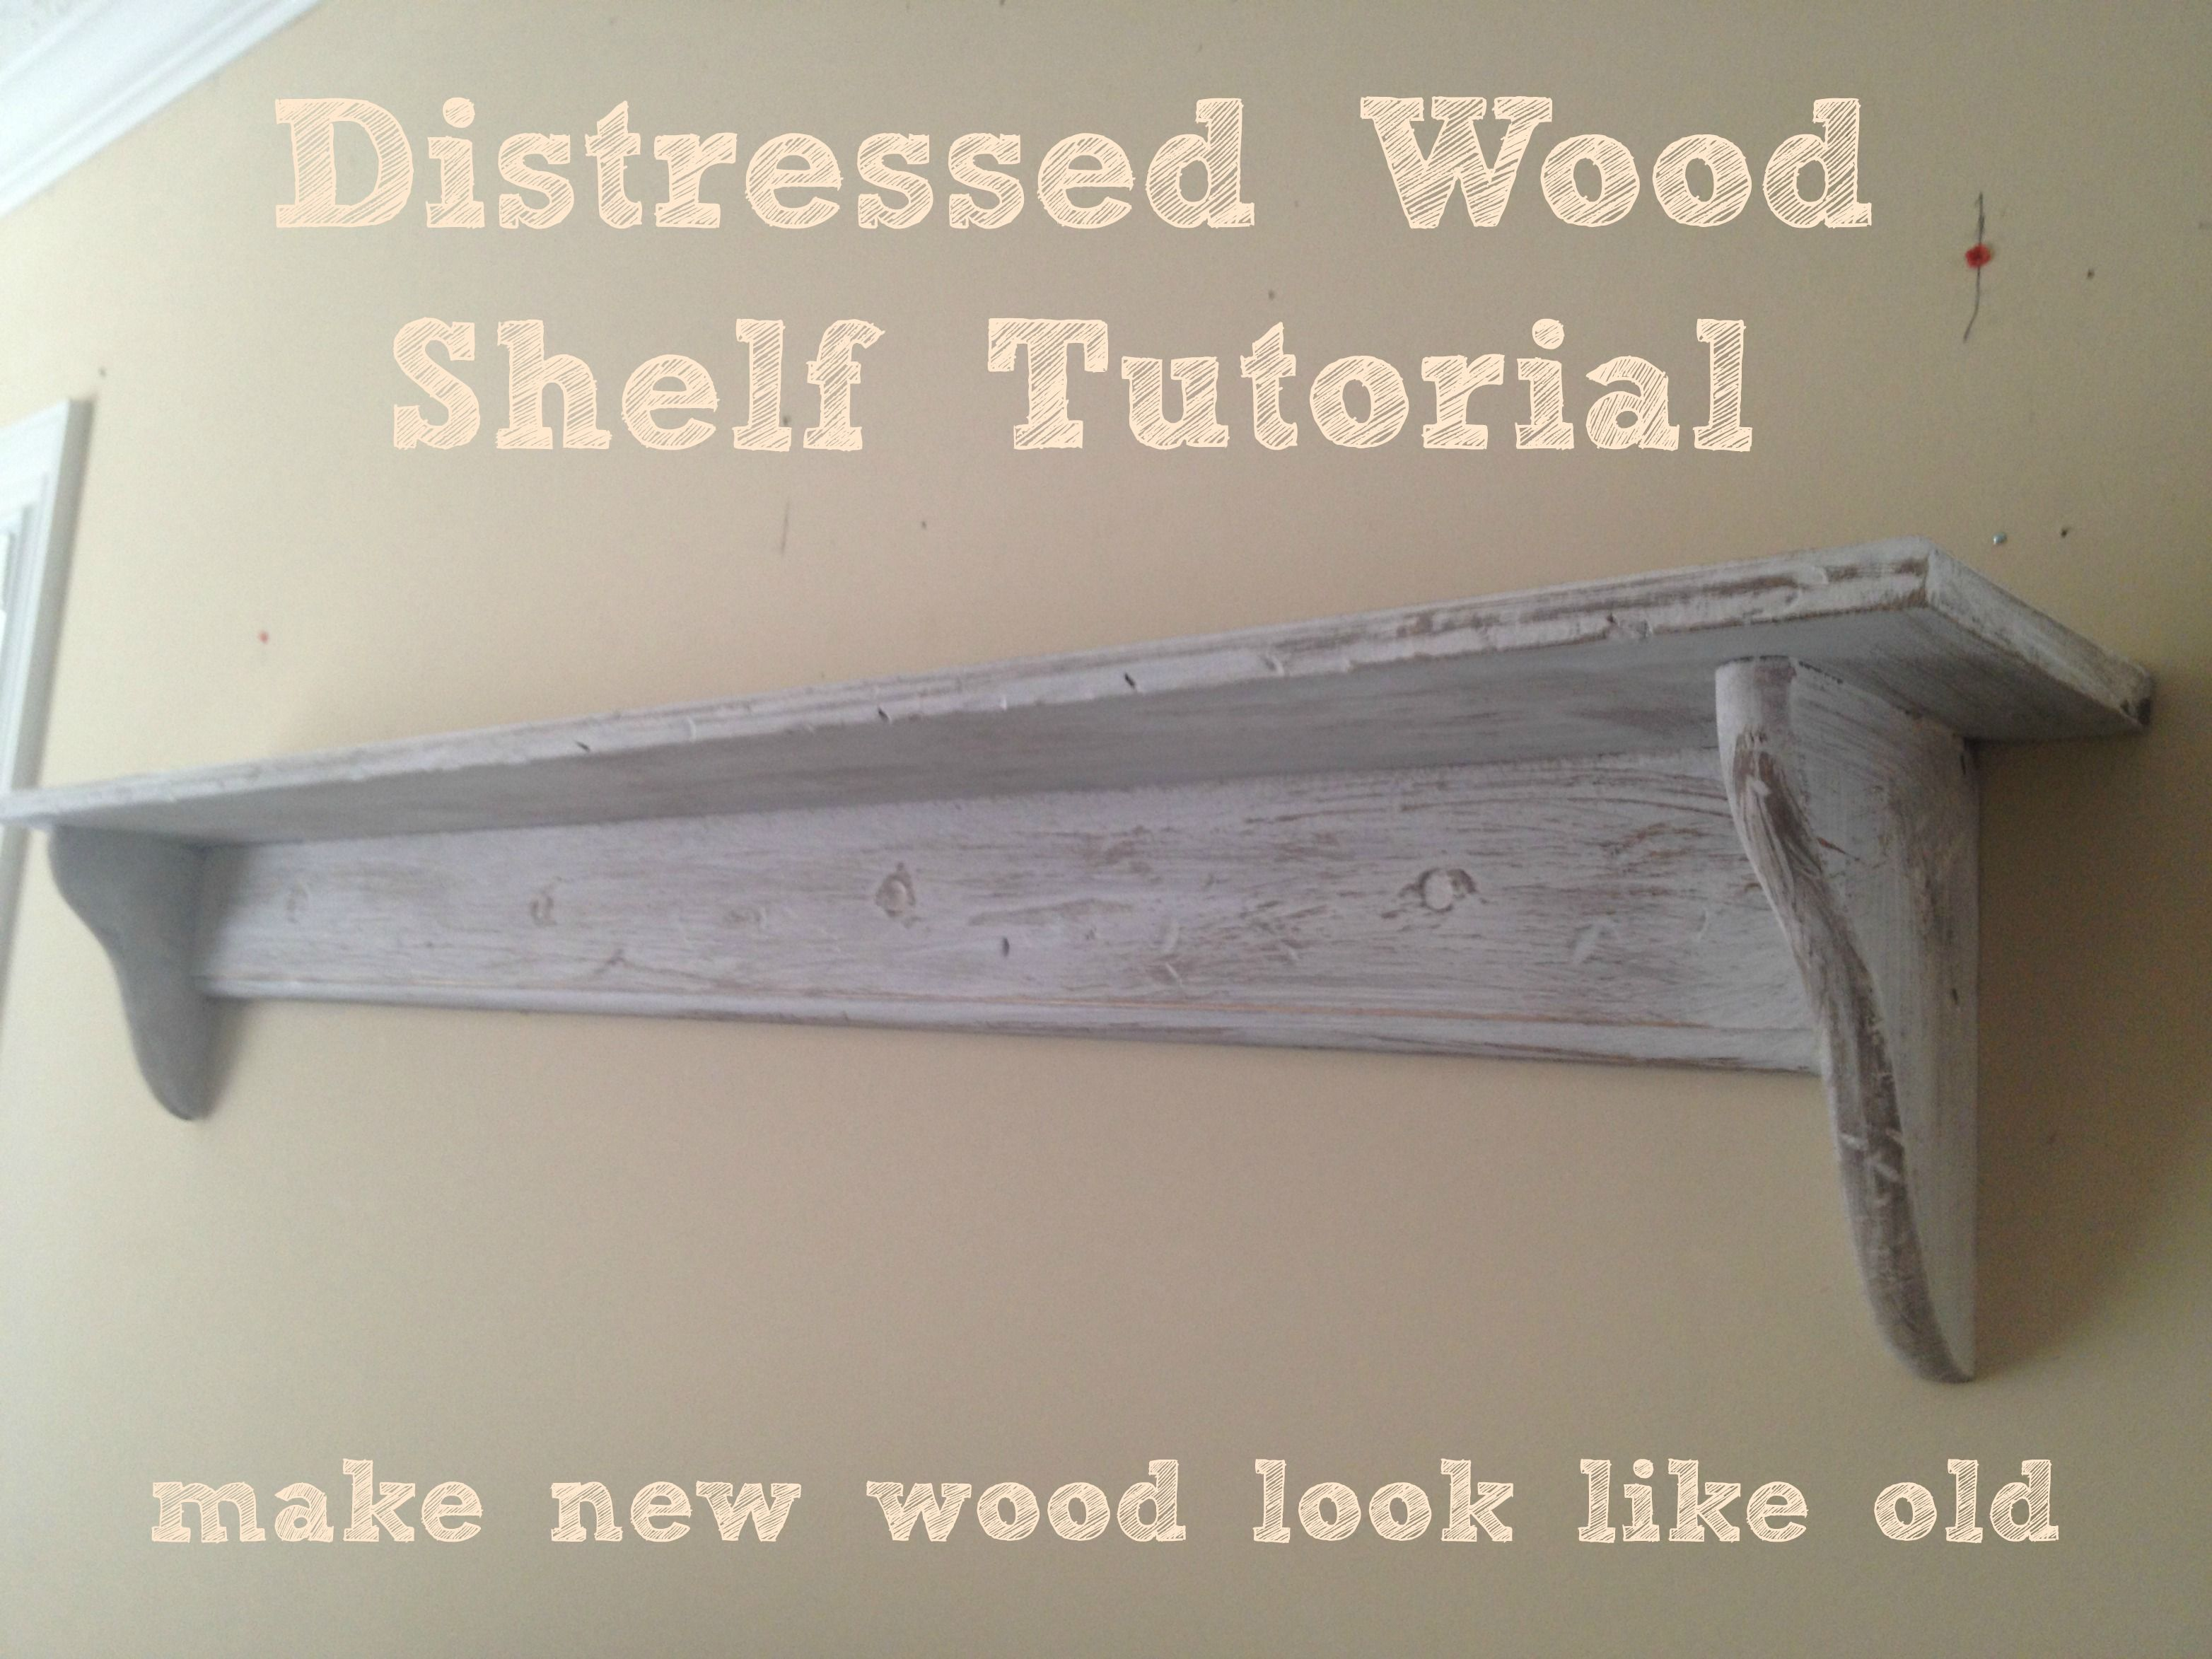 Distressed Wood Shelf Tutorial Tutorial On How To Make A Plain Wooden Shelf Look Old And